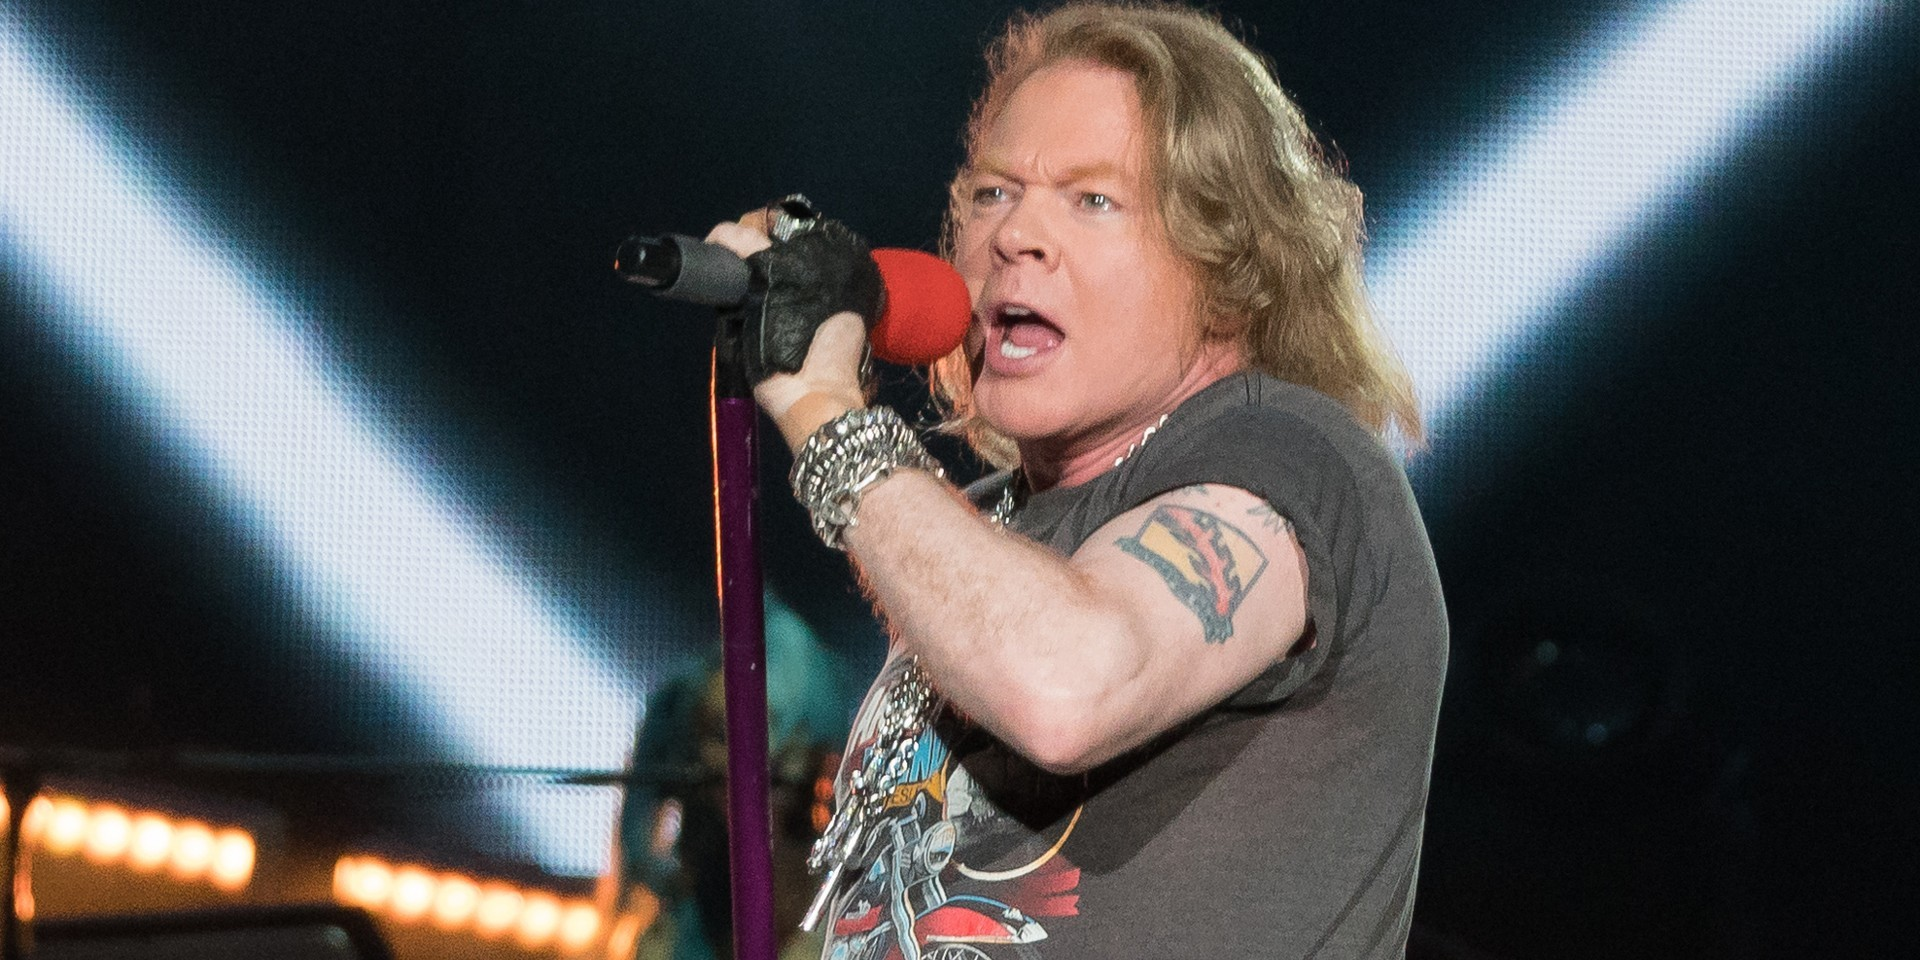 Here's your free ride to Guns N' Roses' Philippine Arena concert